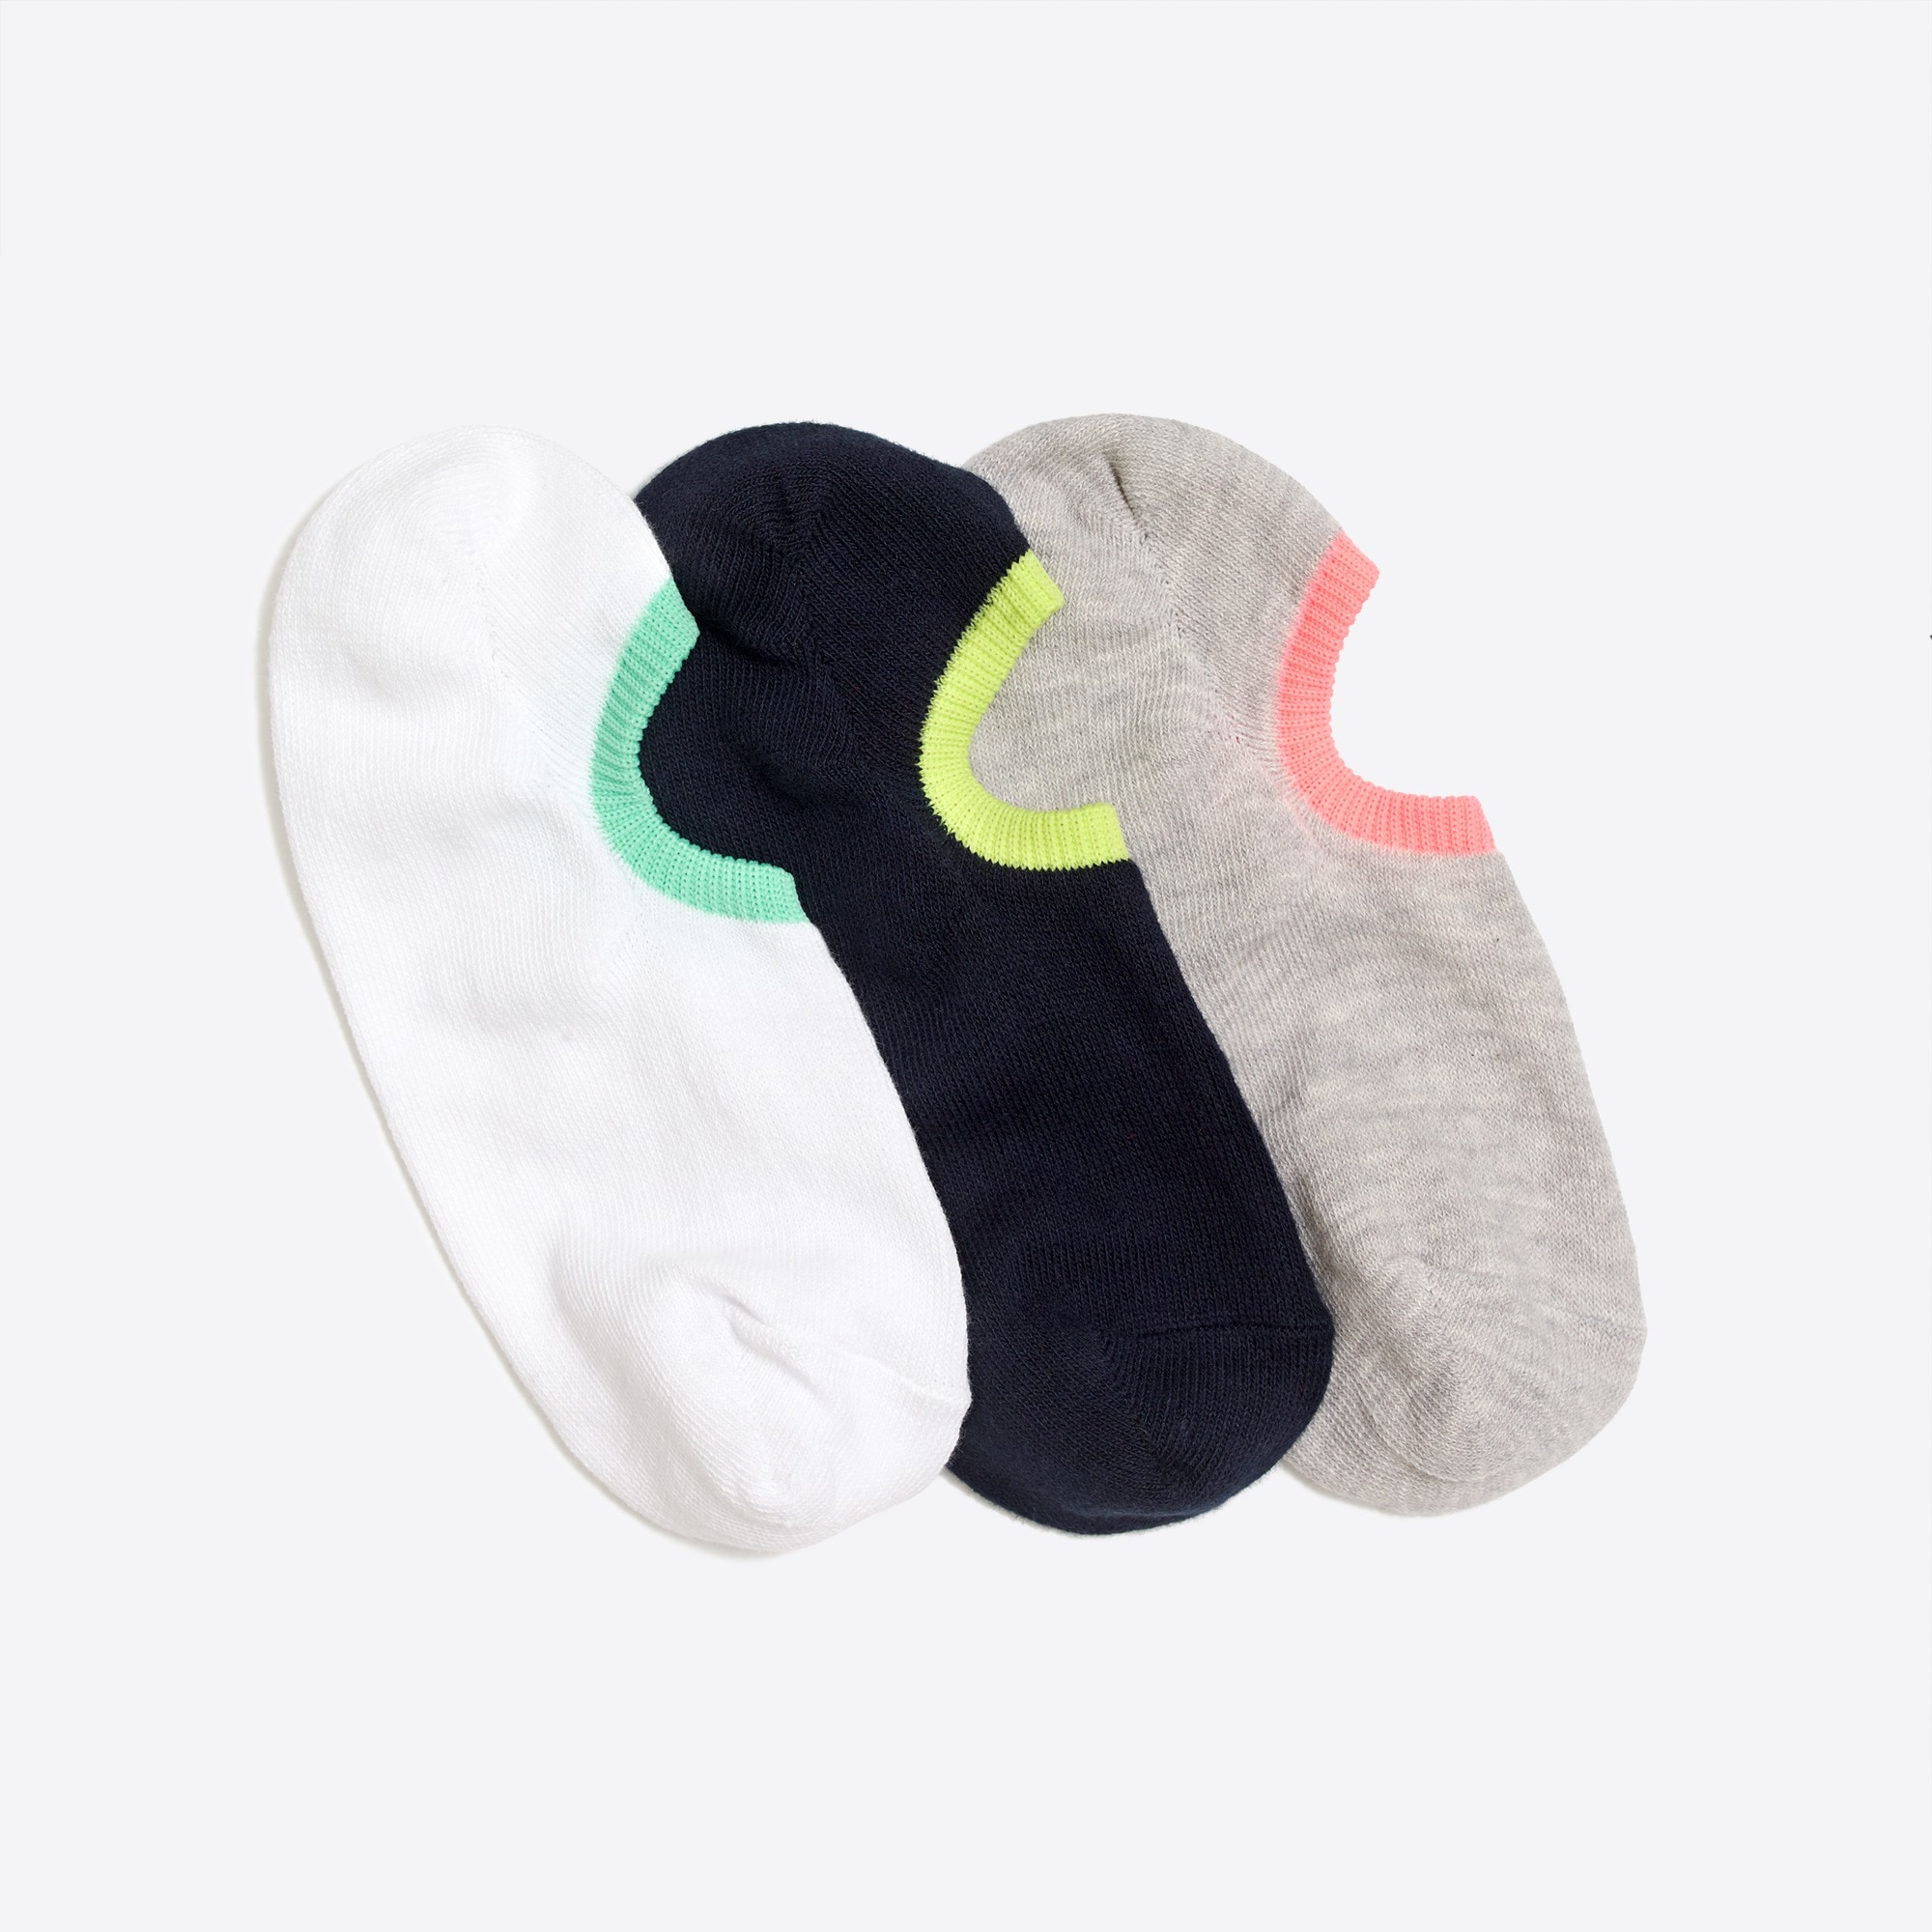 Neon no-show socks three-pack factoryboys the camp shop c